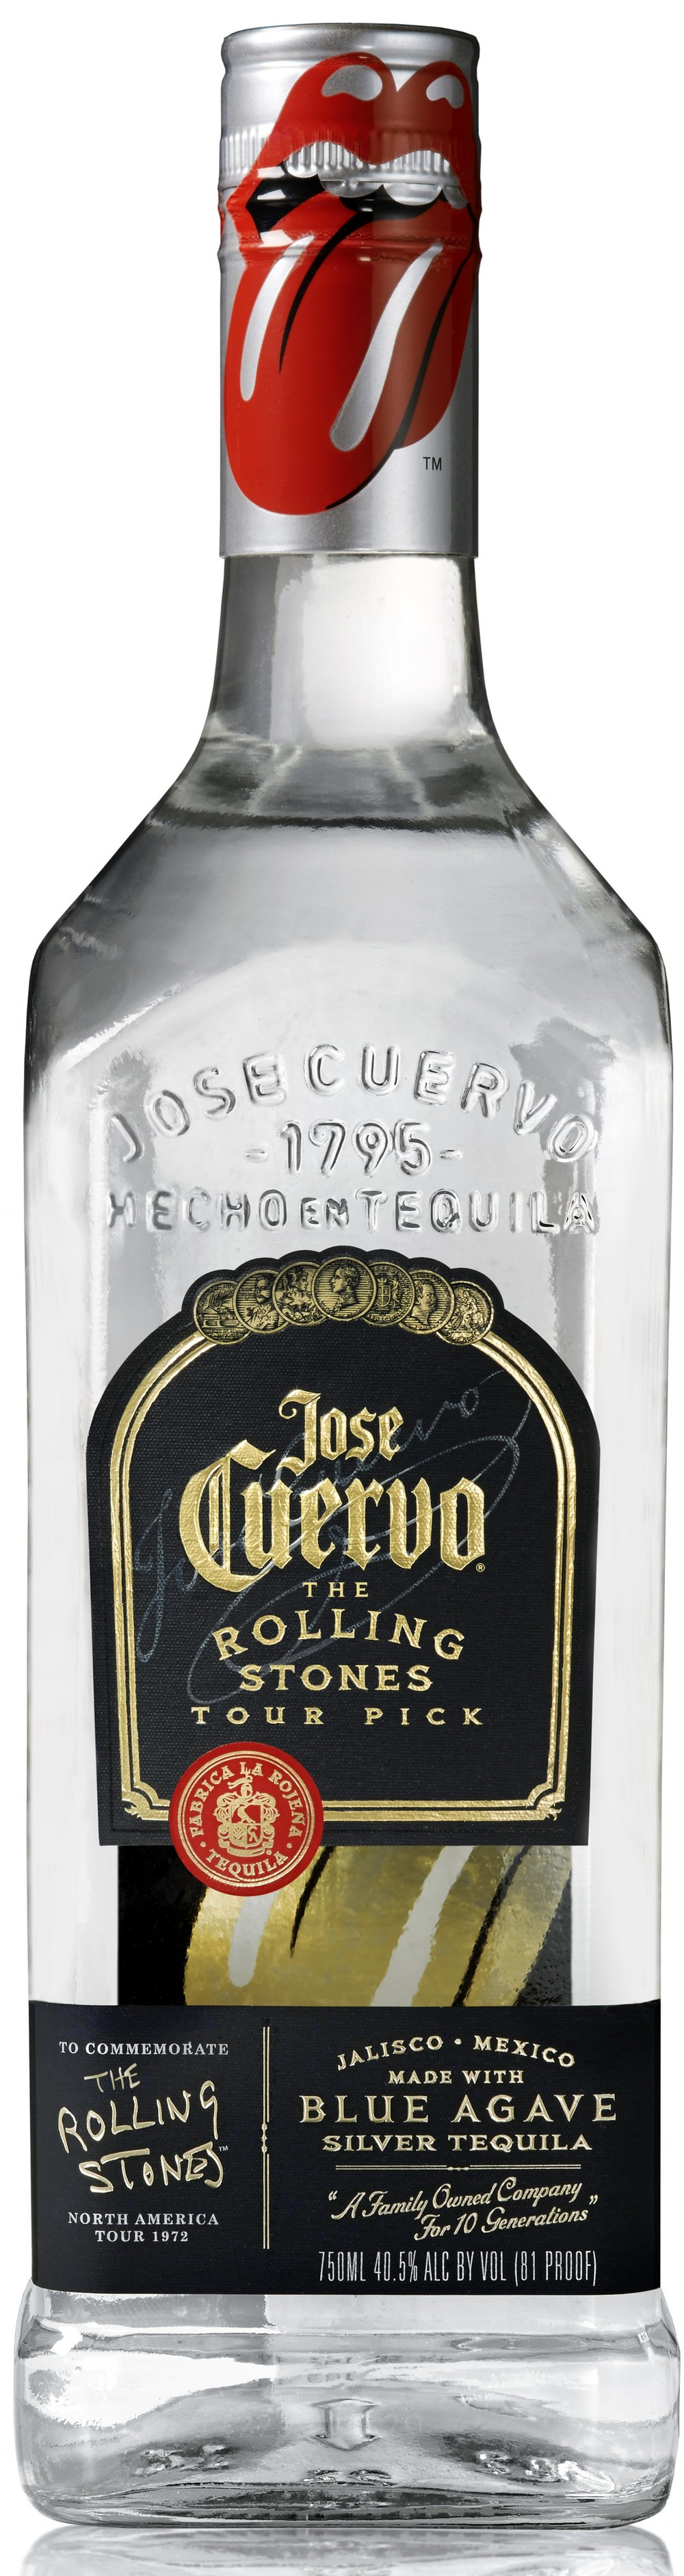 Jose Cuervo Silver - The Rolling Stones Tour Pick Bottle (750 mL), $22.99